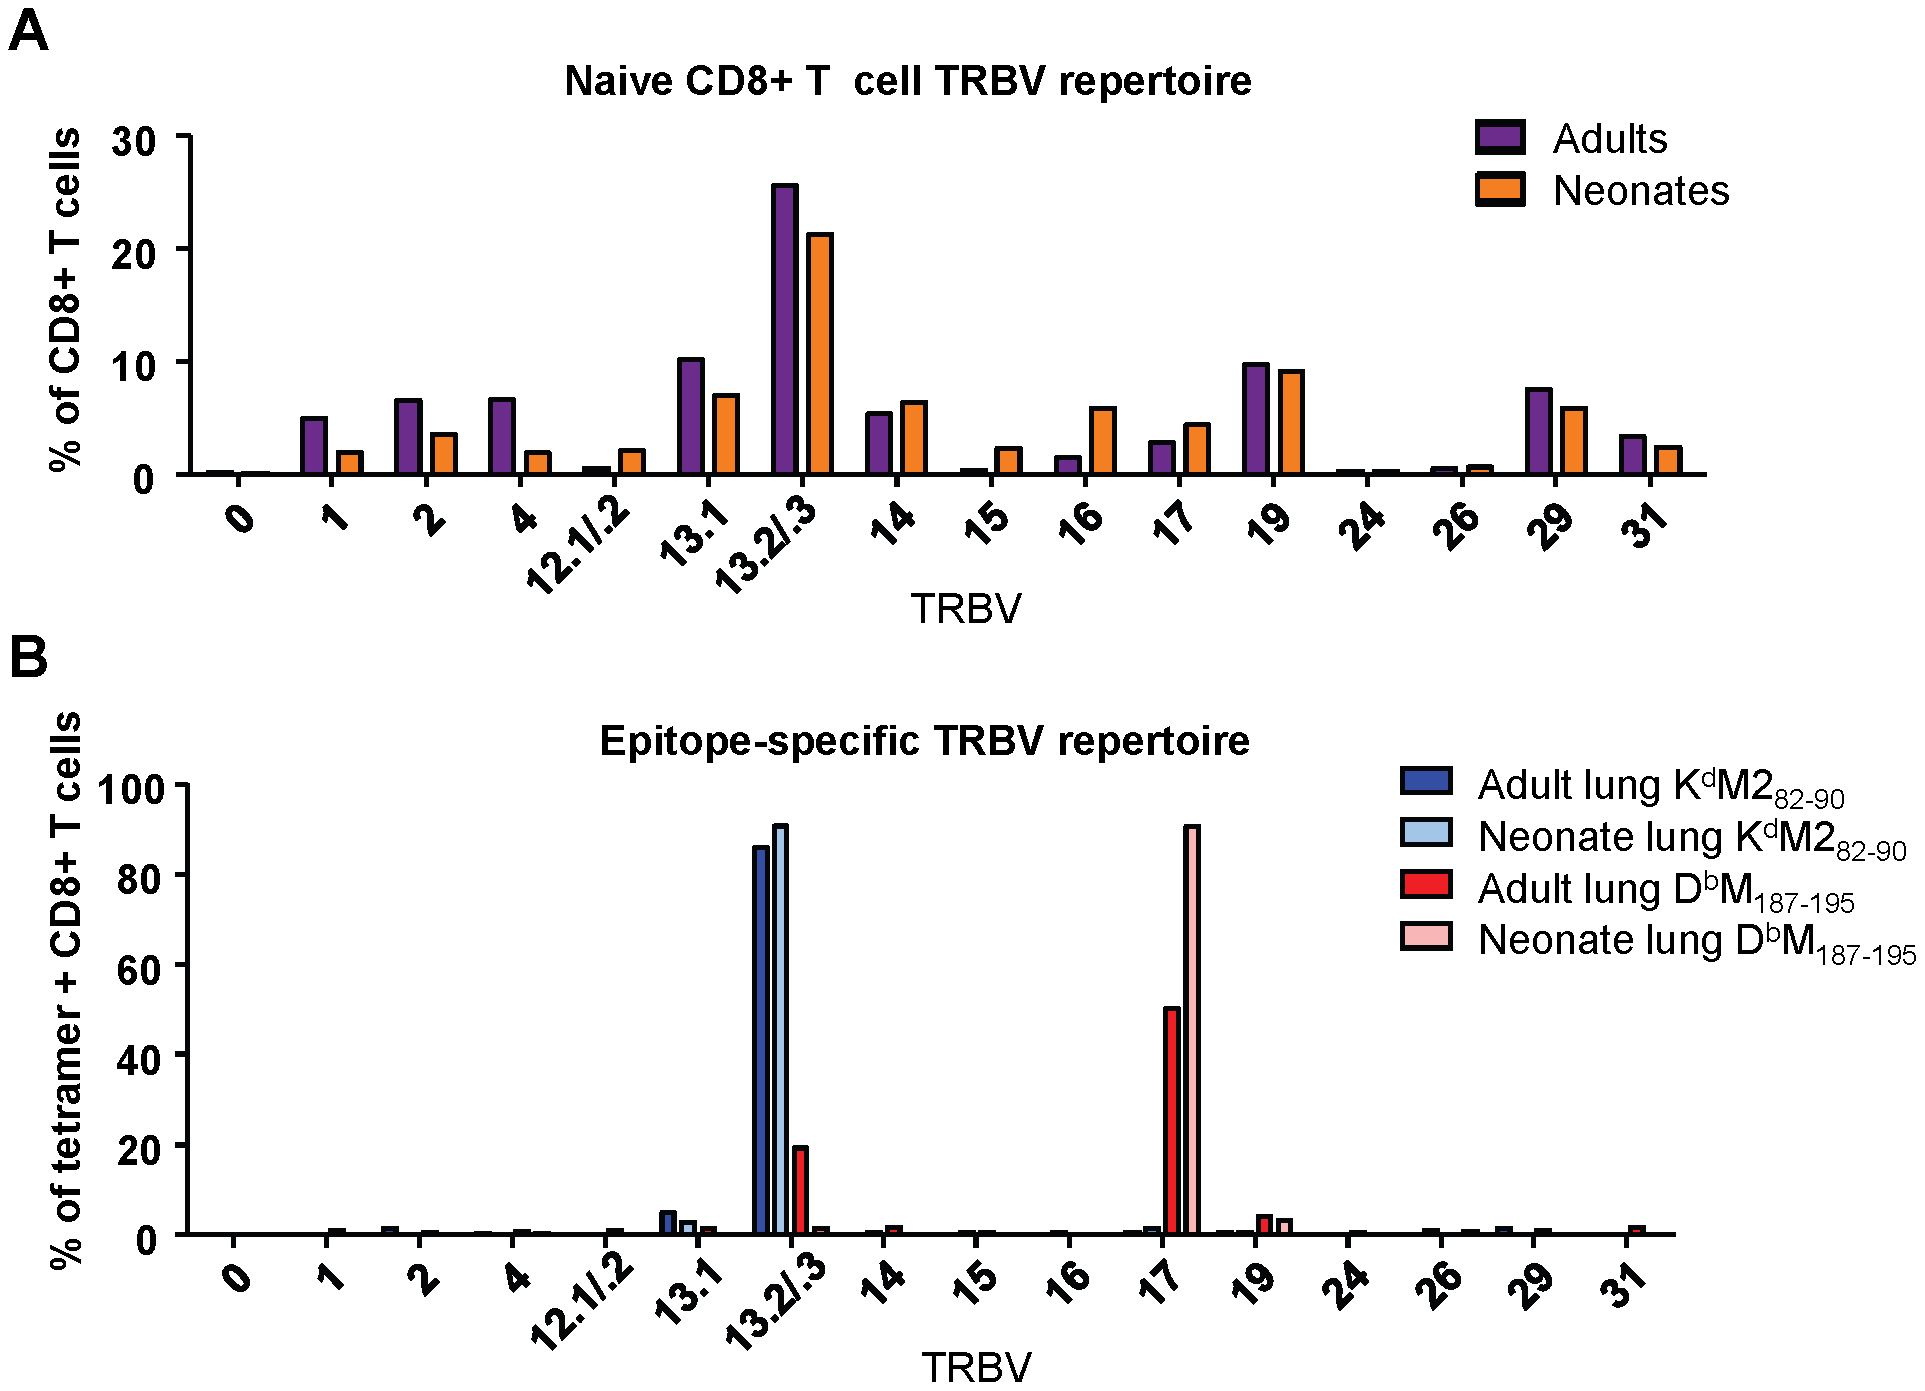 TCR Vβ screening of naïve and epitope-specific CD8+ T cells in adult and neonatal mice.